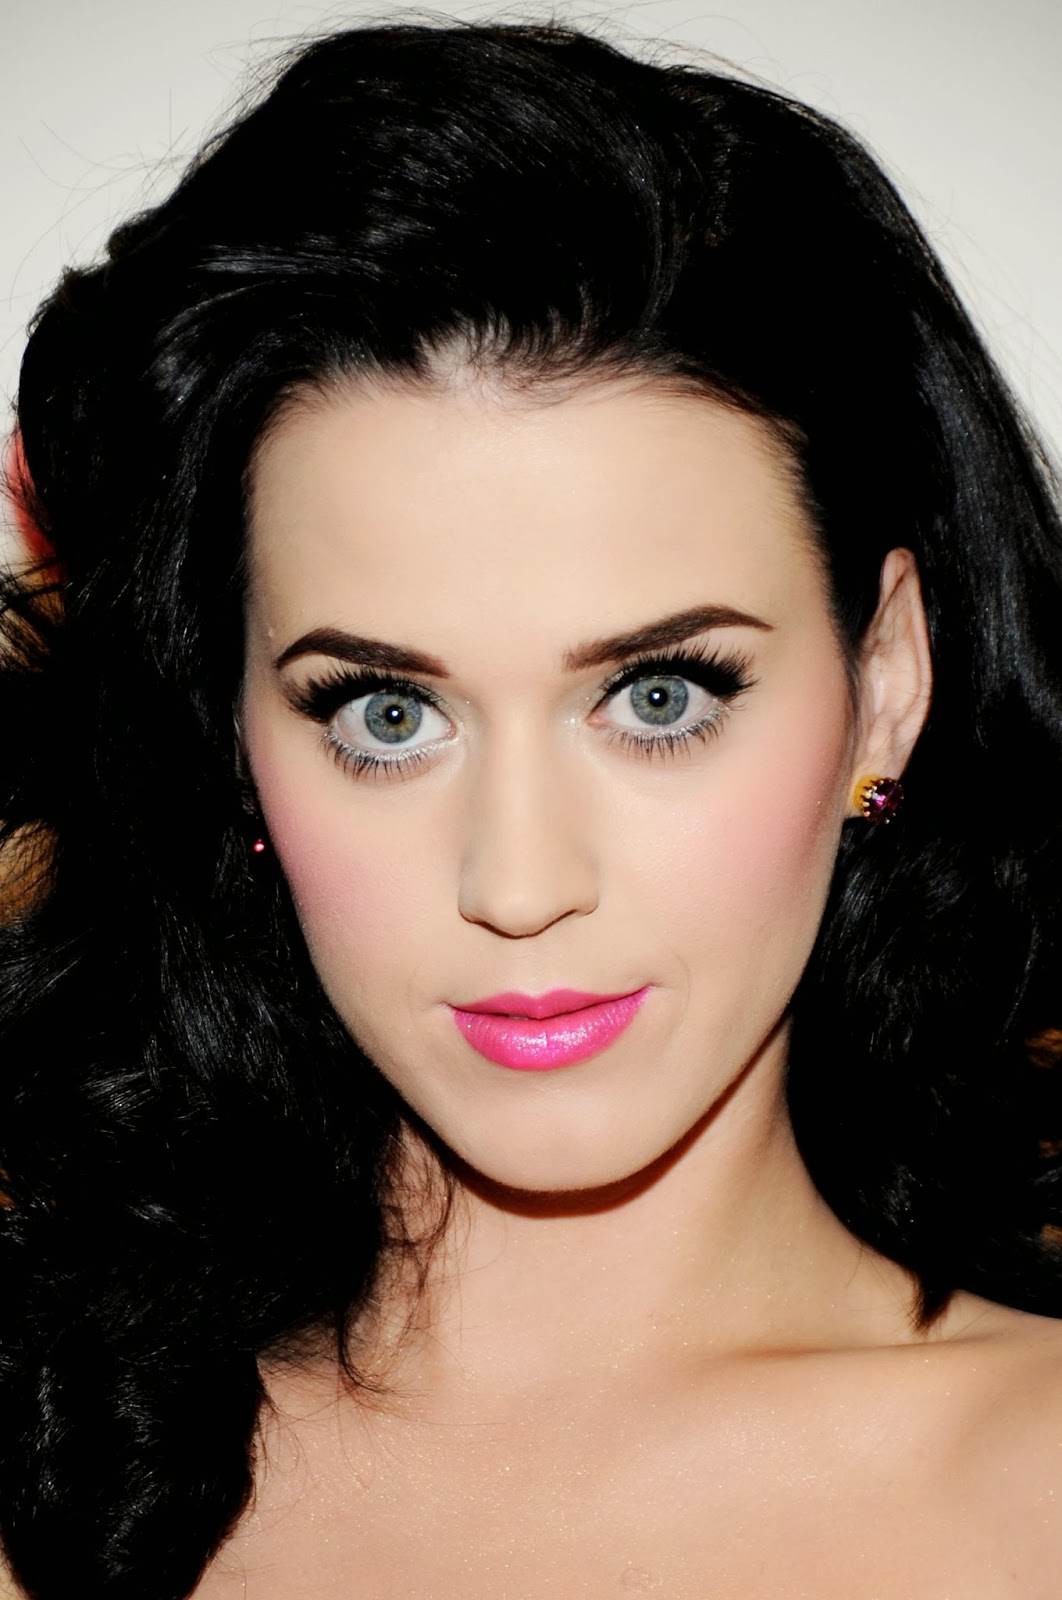 Katy Perry: Katy Perry HD Wallpapers